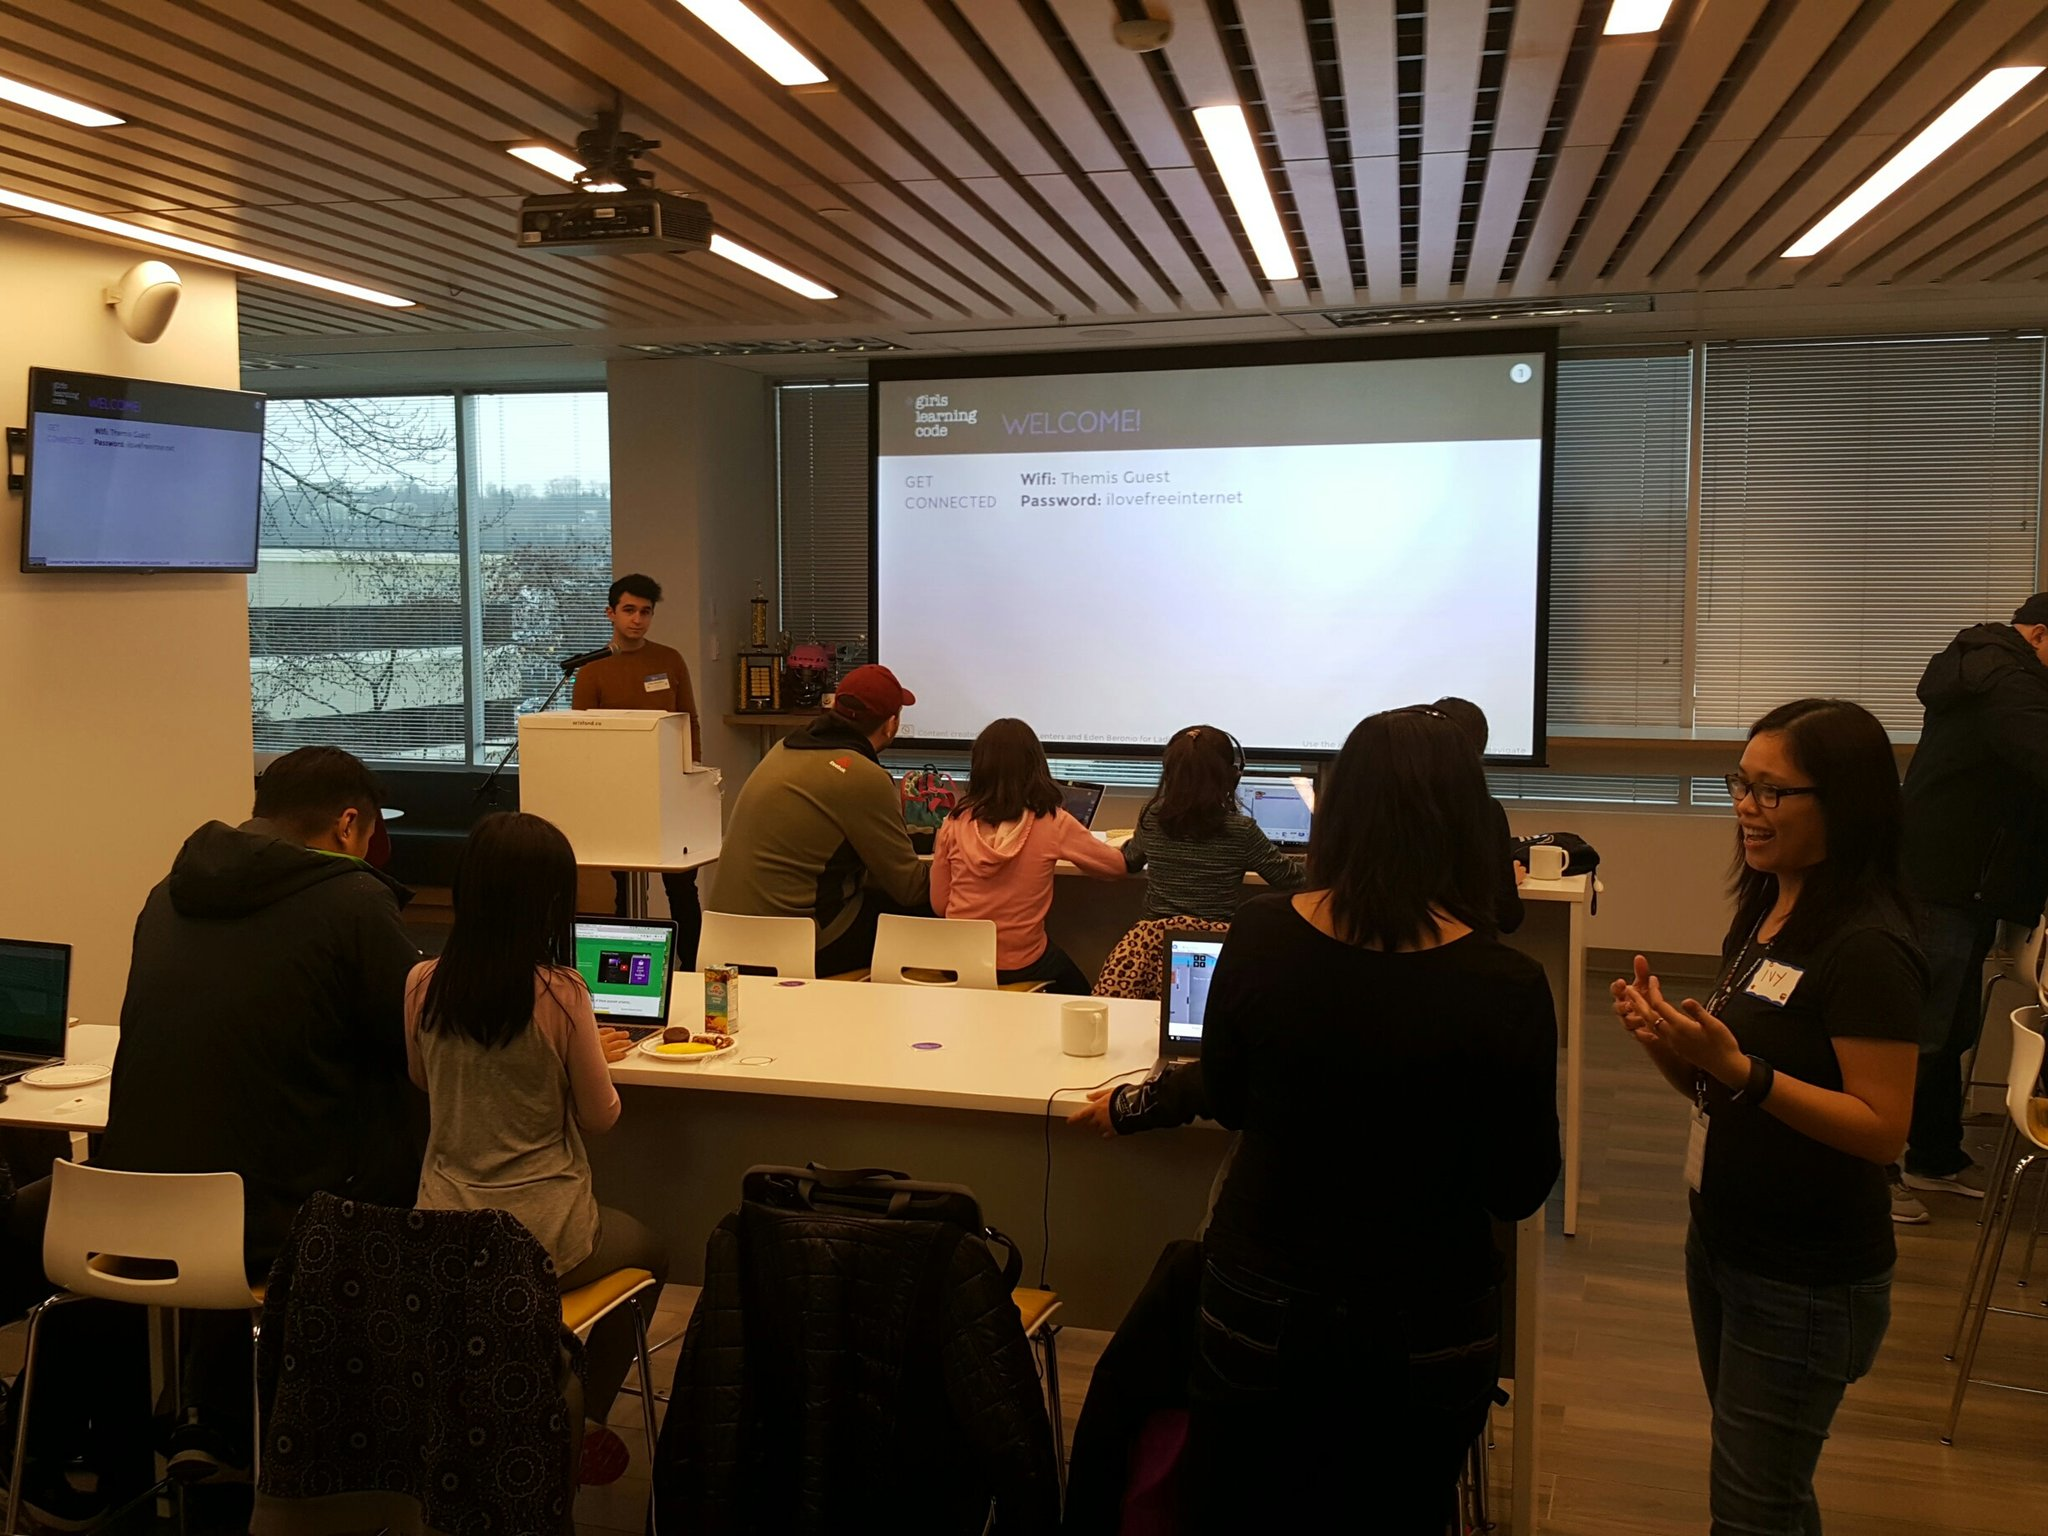 A group of girls and parents sit at laptops in front of a projector screen learning HTML/CSS.